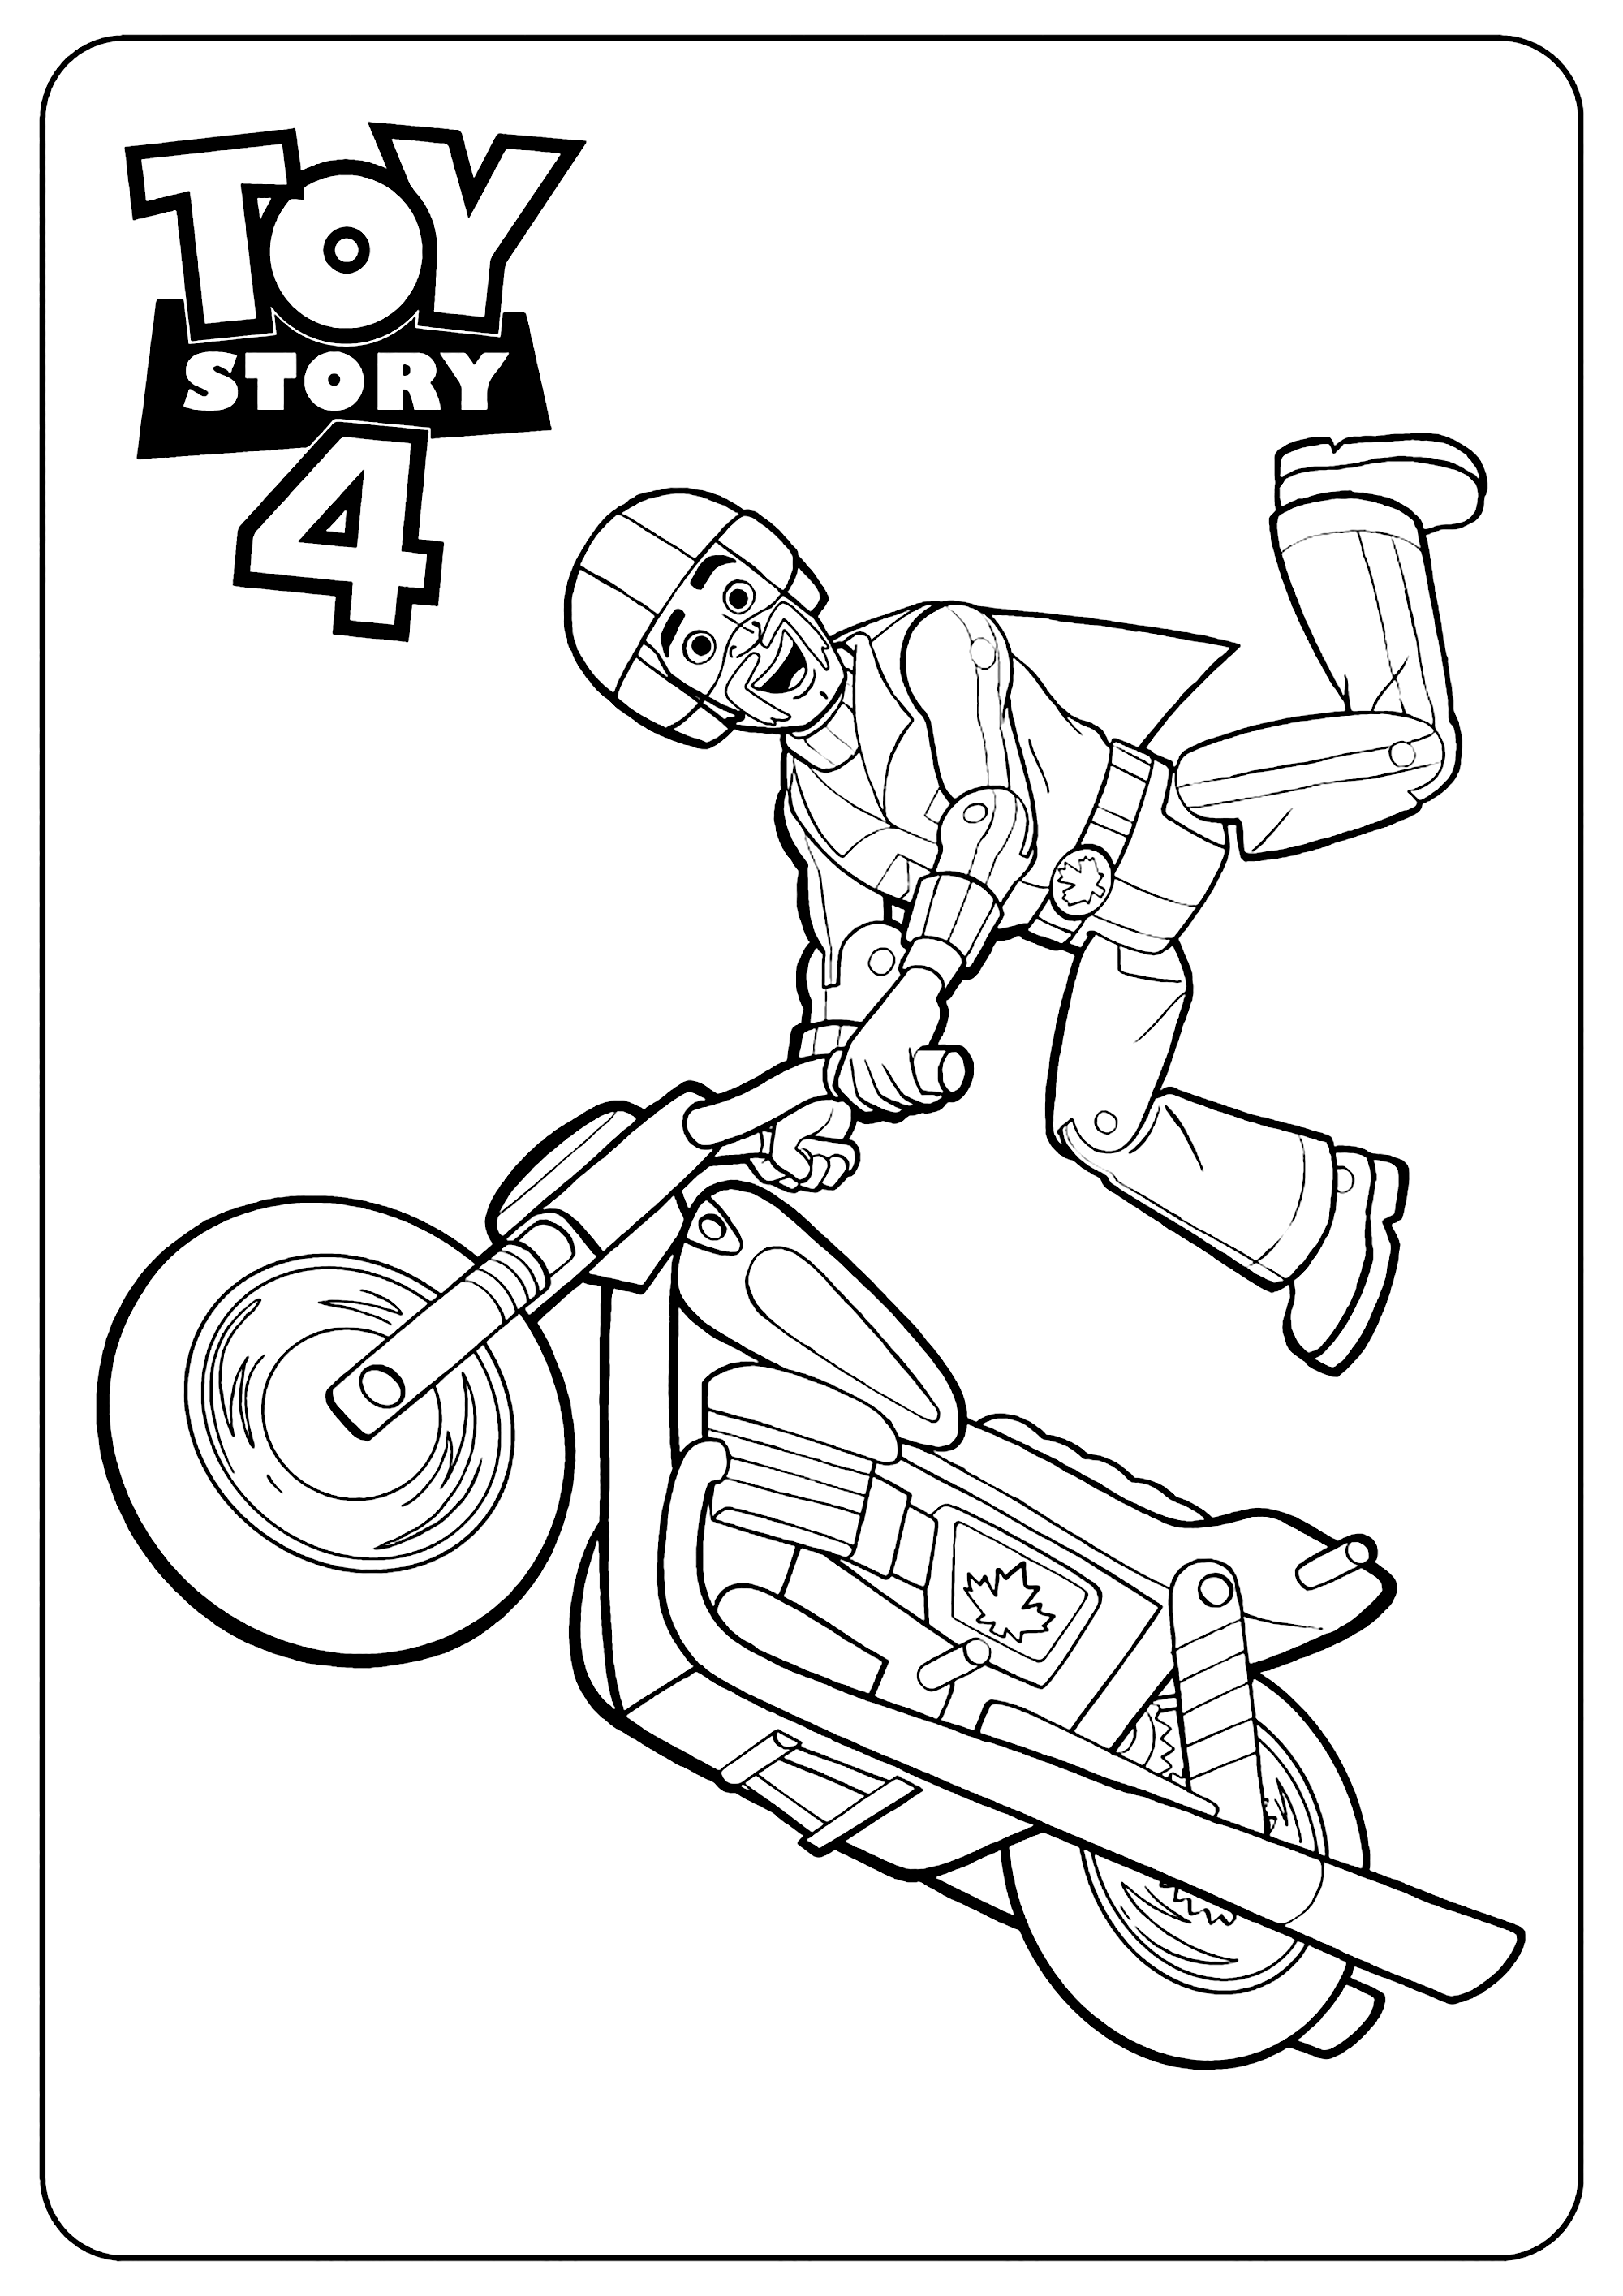 Simple Toy Story 4 coloring page : Duke Caboom